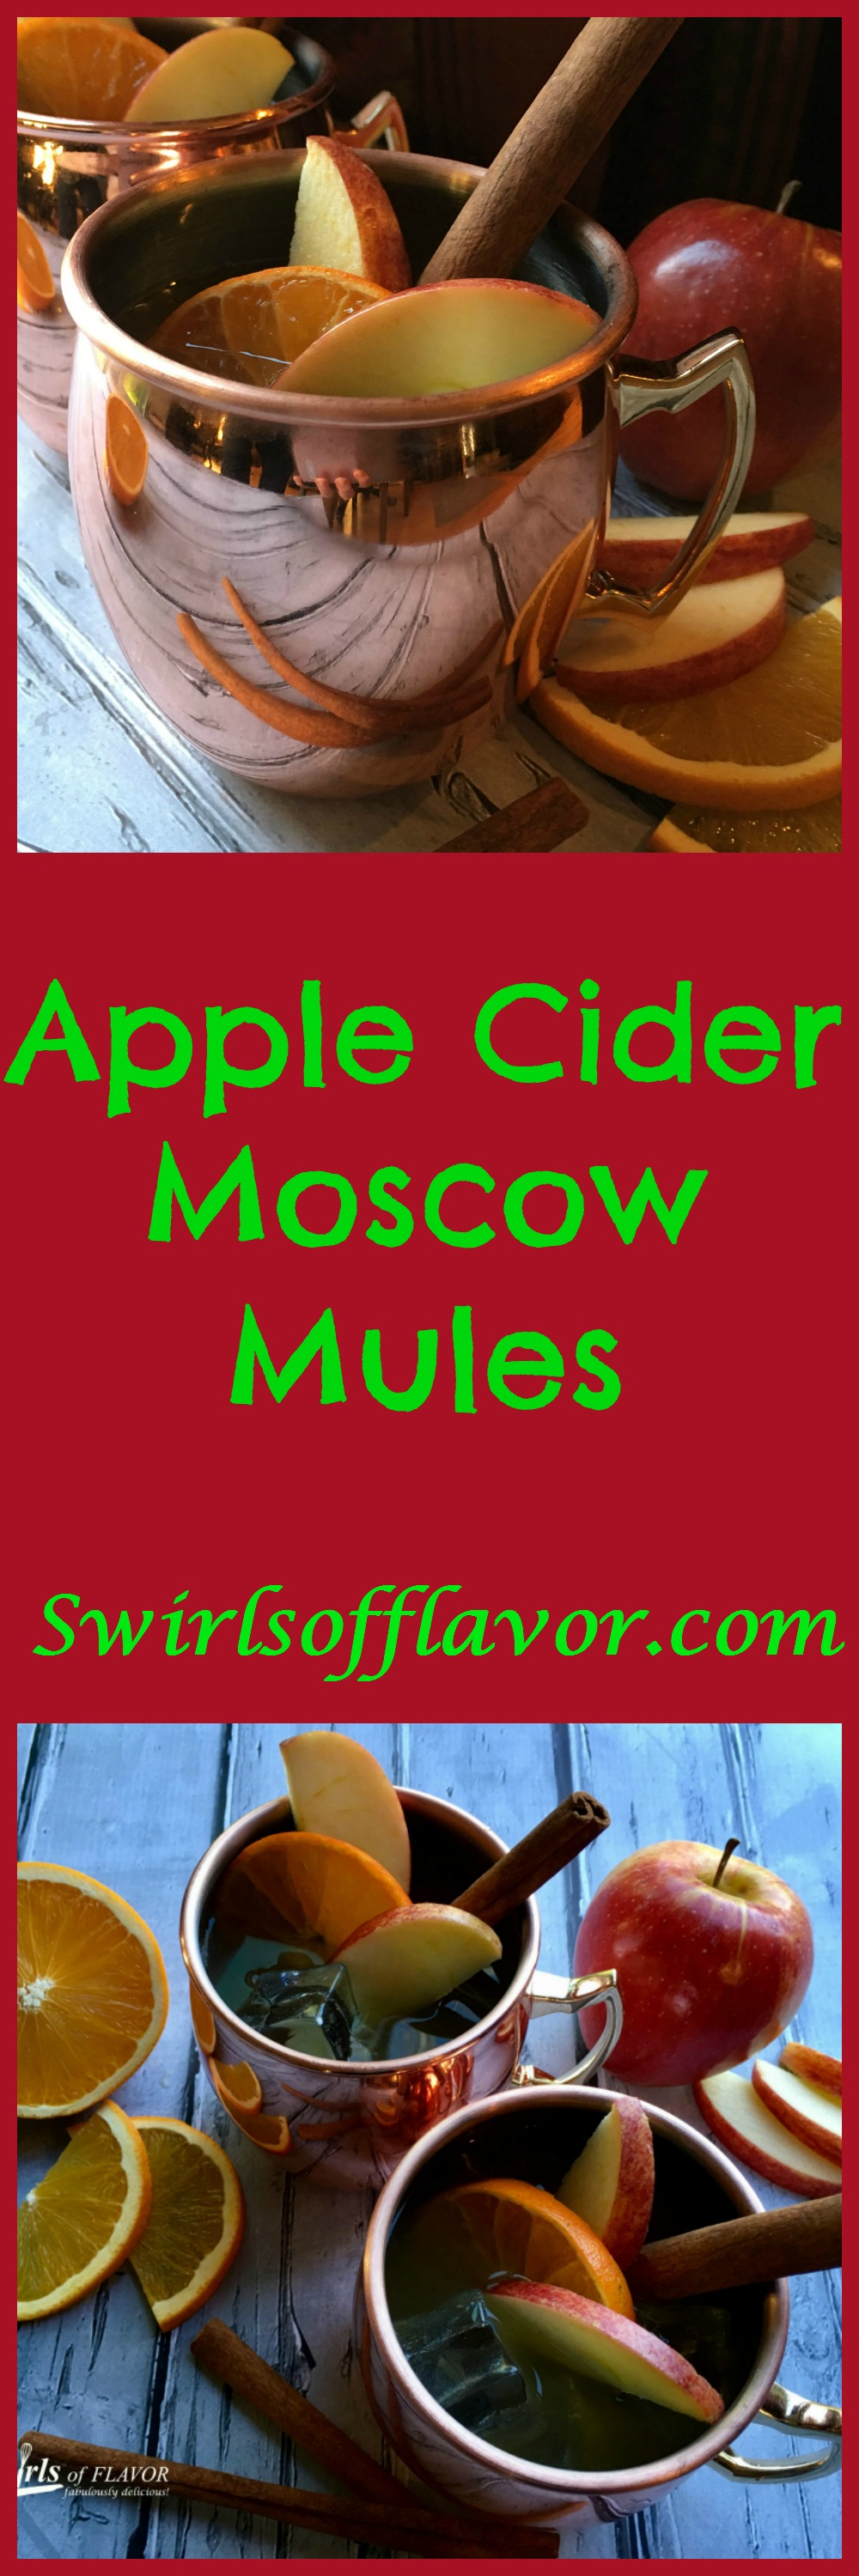 Our Apple Cider Moscow Mule cocktail recipe is a twist on this classic cocktail replacing the lime juice with seasonal apple cider and garnishing with an orange slice and a cinnamon stick stirrer! The Moscow Mule has been updated for the cool autumn weather and this trendy cocktail never tasted so good! #moscowmule #cocktail #easyrecipe #applecider #limejuice #entertaining #autumnrecipe #vodka #gingerbeer #drinks #drinkrecipe #swirlsofflavor!